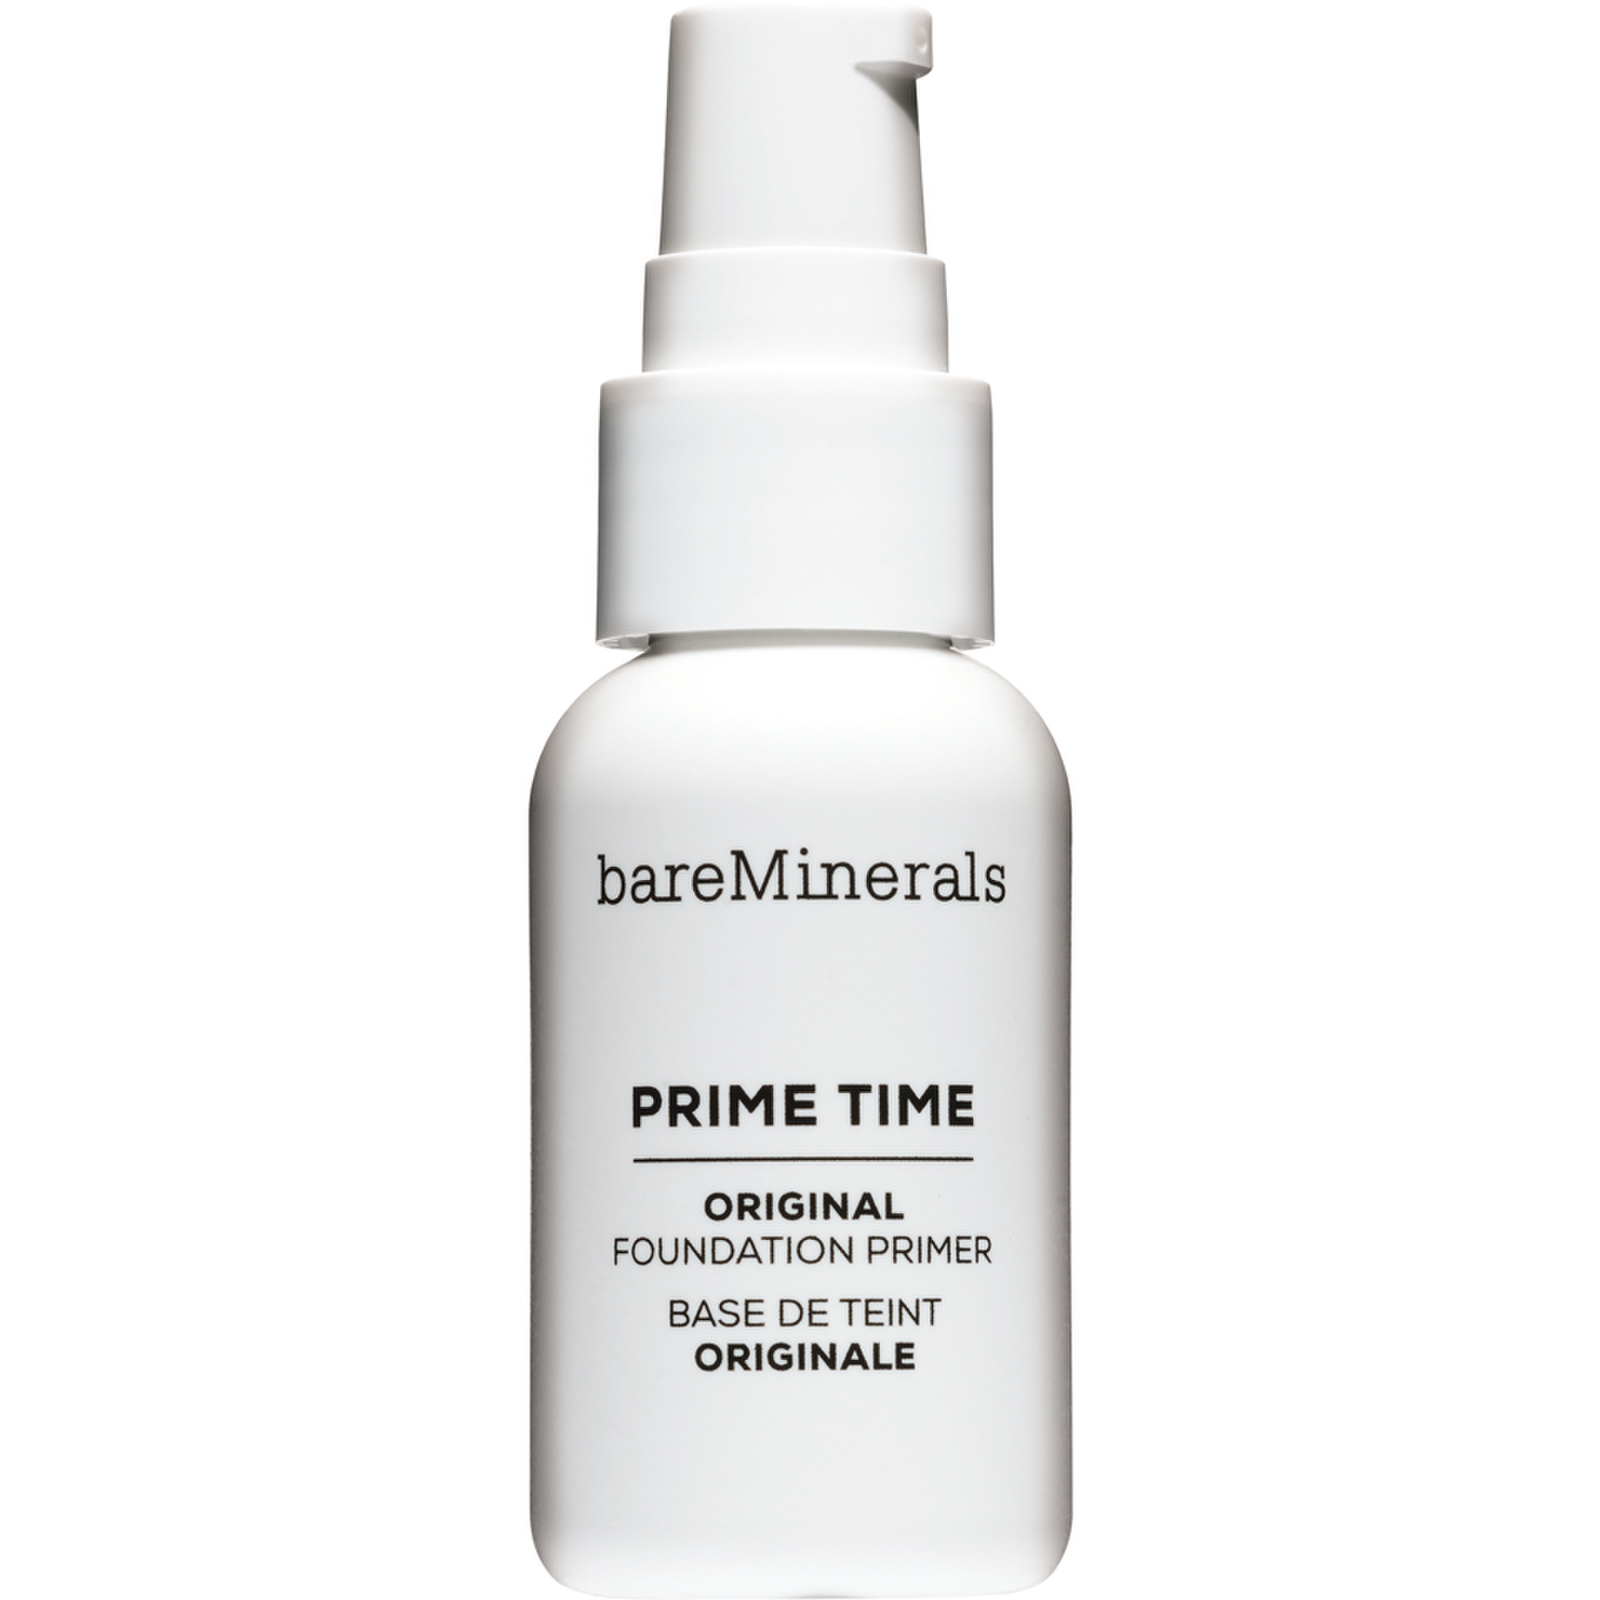 Bare minerals-Prime Time Original Foundation Primer